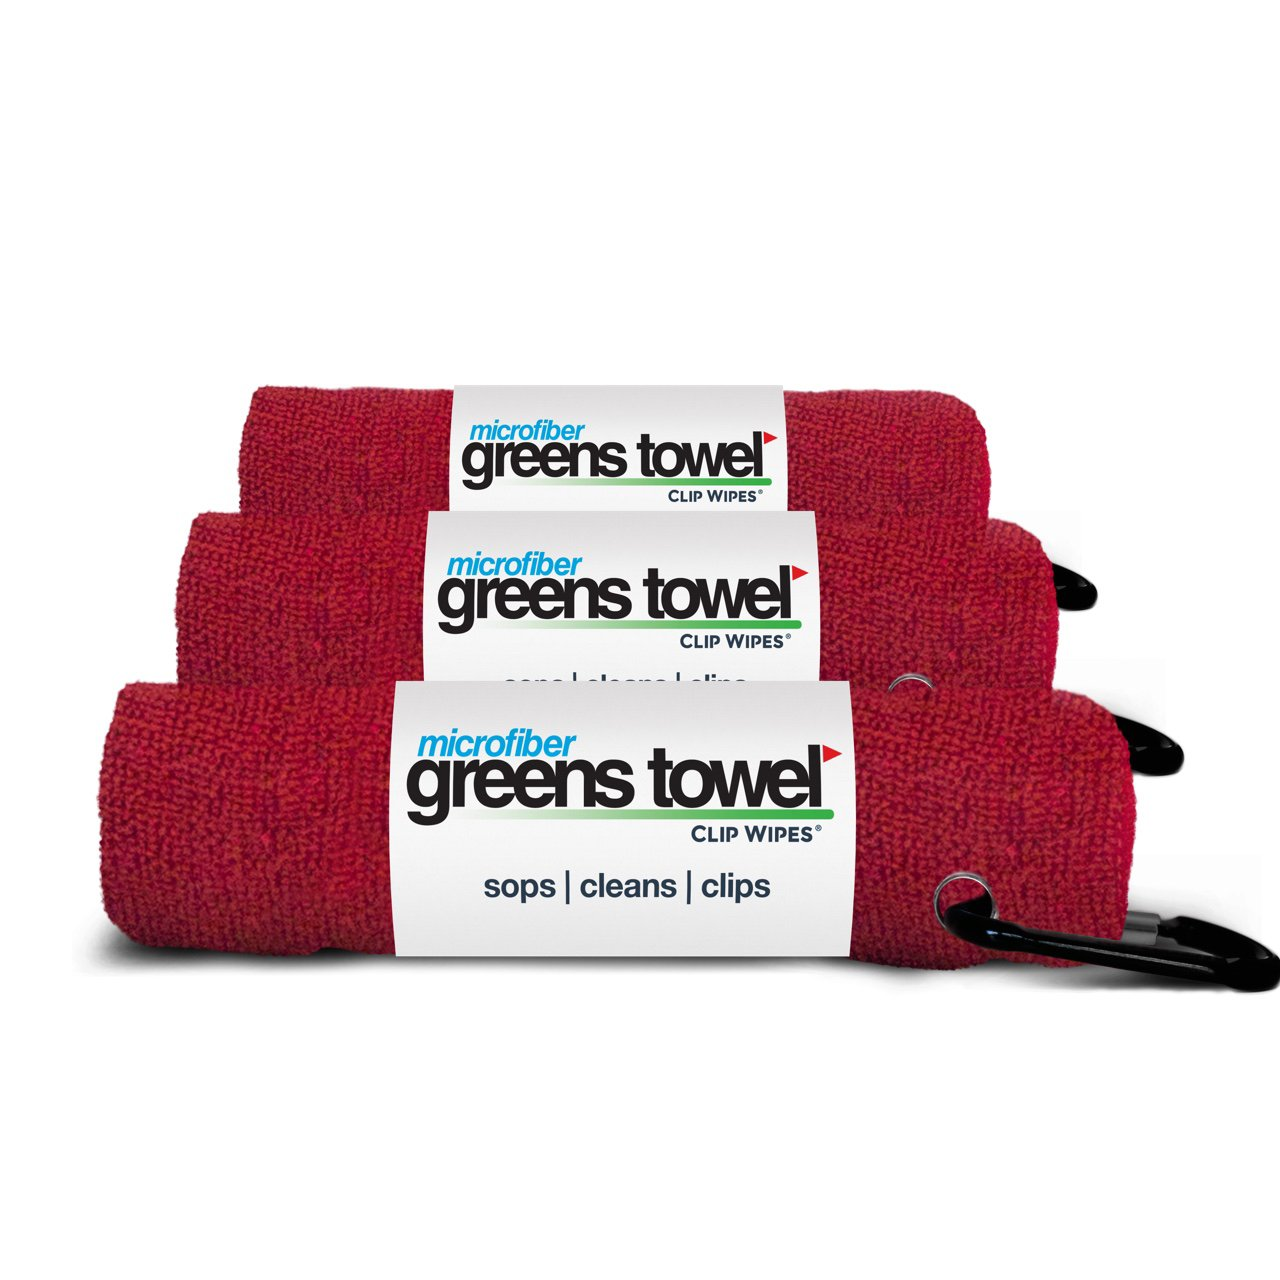 3 Pack of Cardinal Red Microfiber Golf Towels by Greens Towel